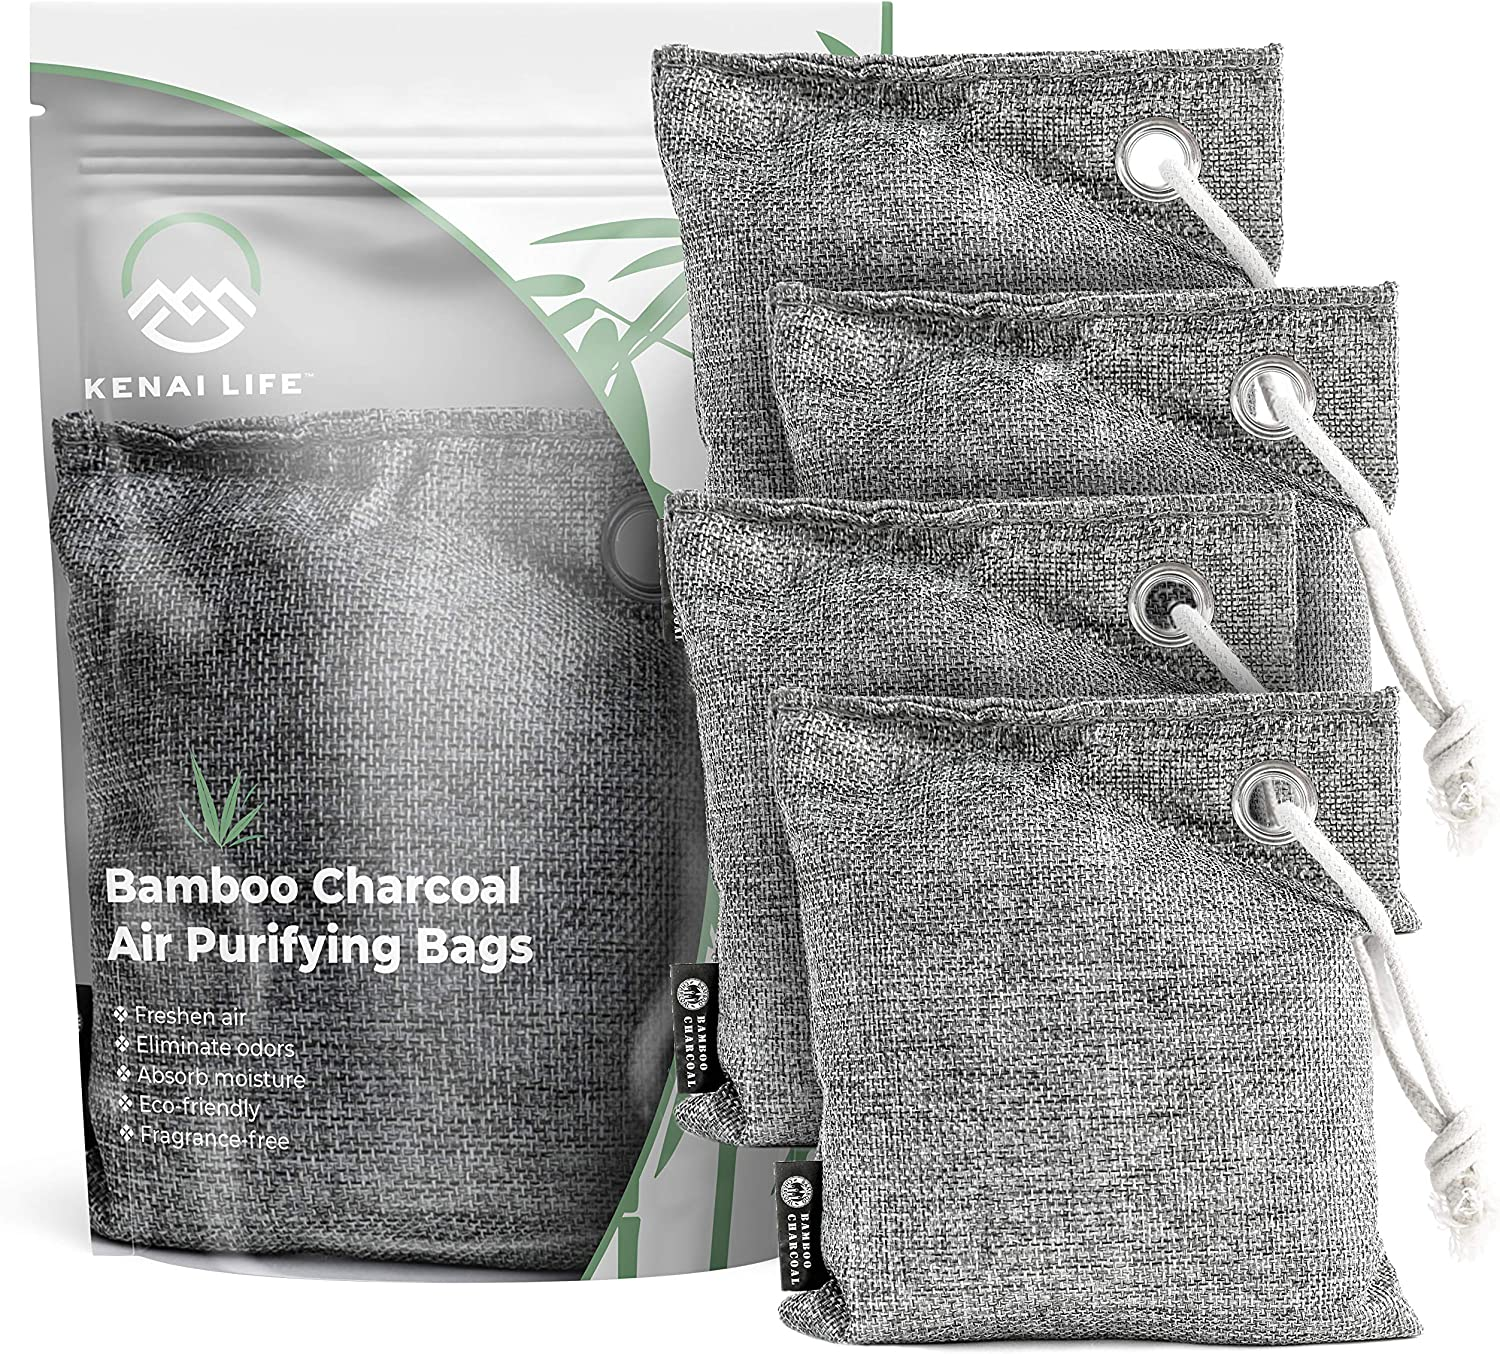 Charcoal Bags Odor Absorber for Home, Pet Odor Eliminator & Air Freshener, Bamboo Charcoal Car Air Purifier Bags, Closet & Small Room Deodorizer Air Purifying Bags, 4 Pack 200g